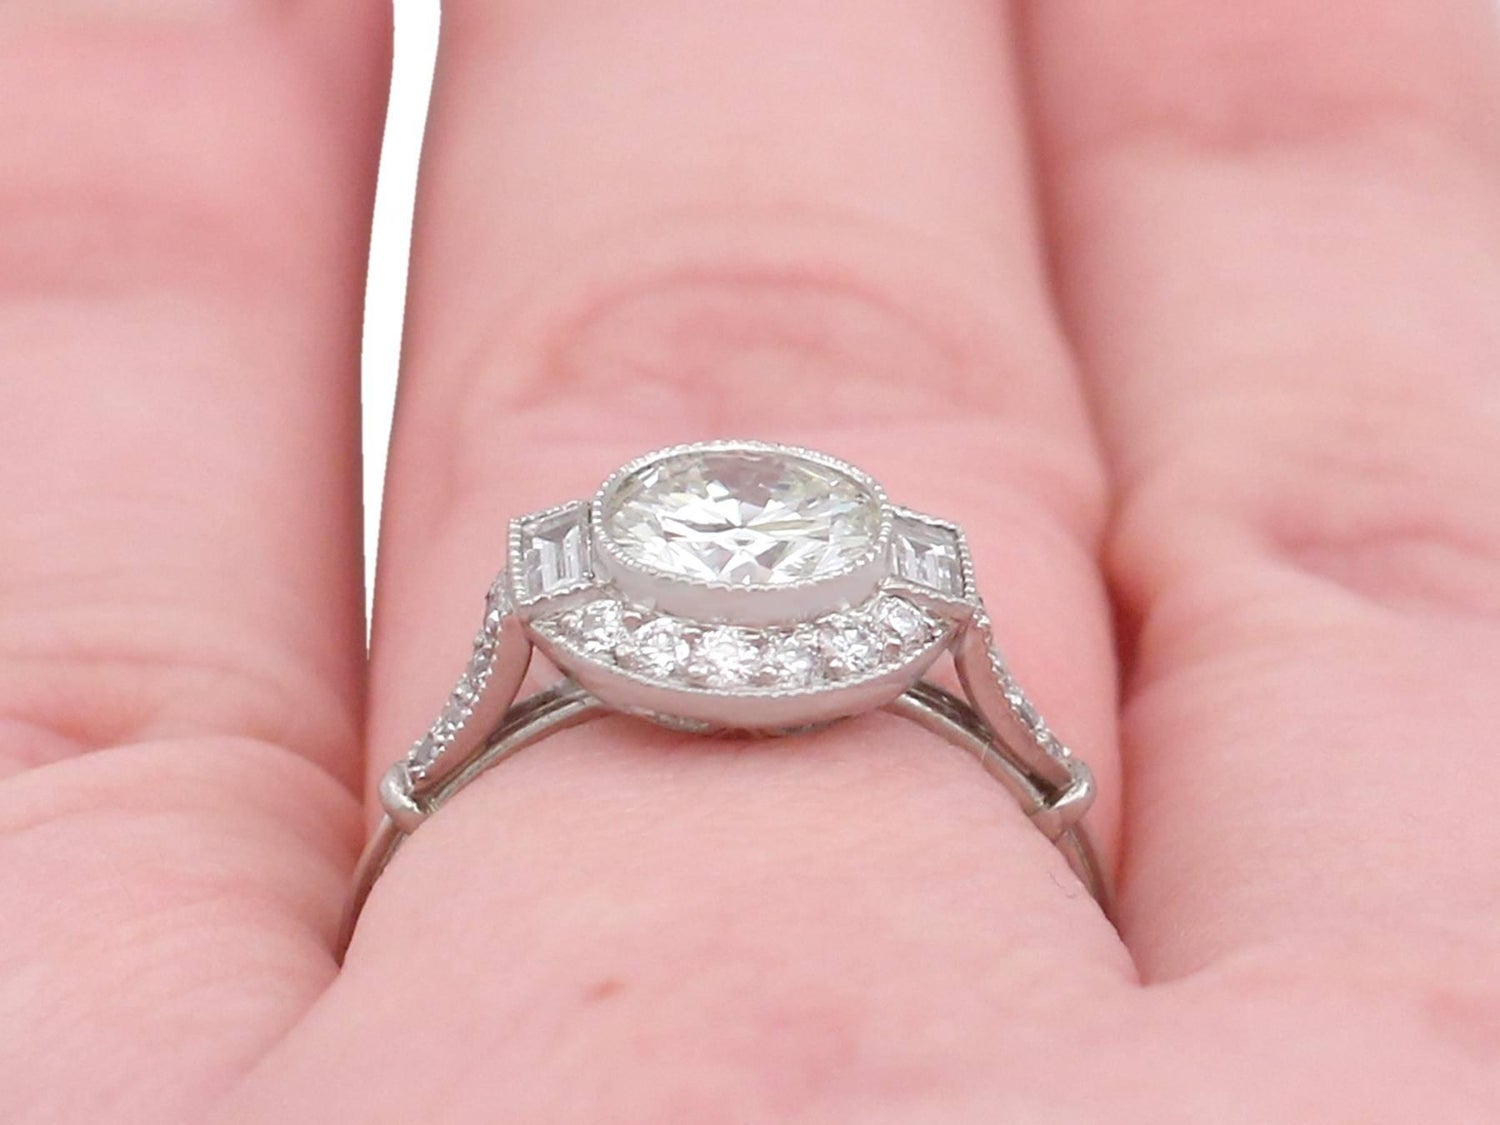 1.82 Carat Diamond and Platinum Halo Ring For Sale at 1stdibs